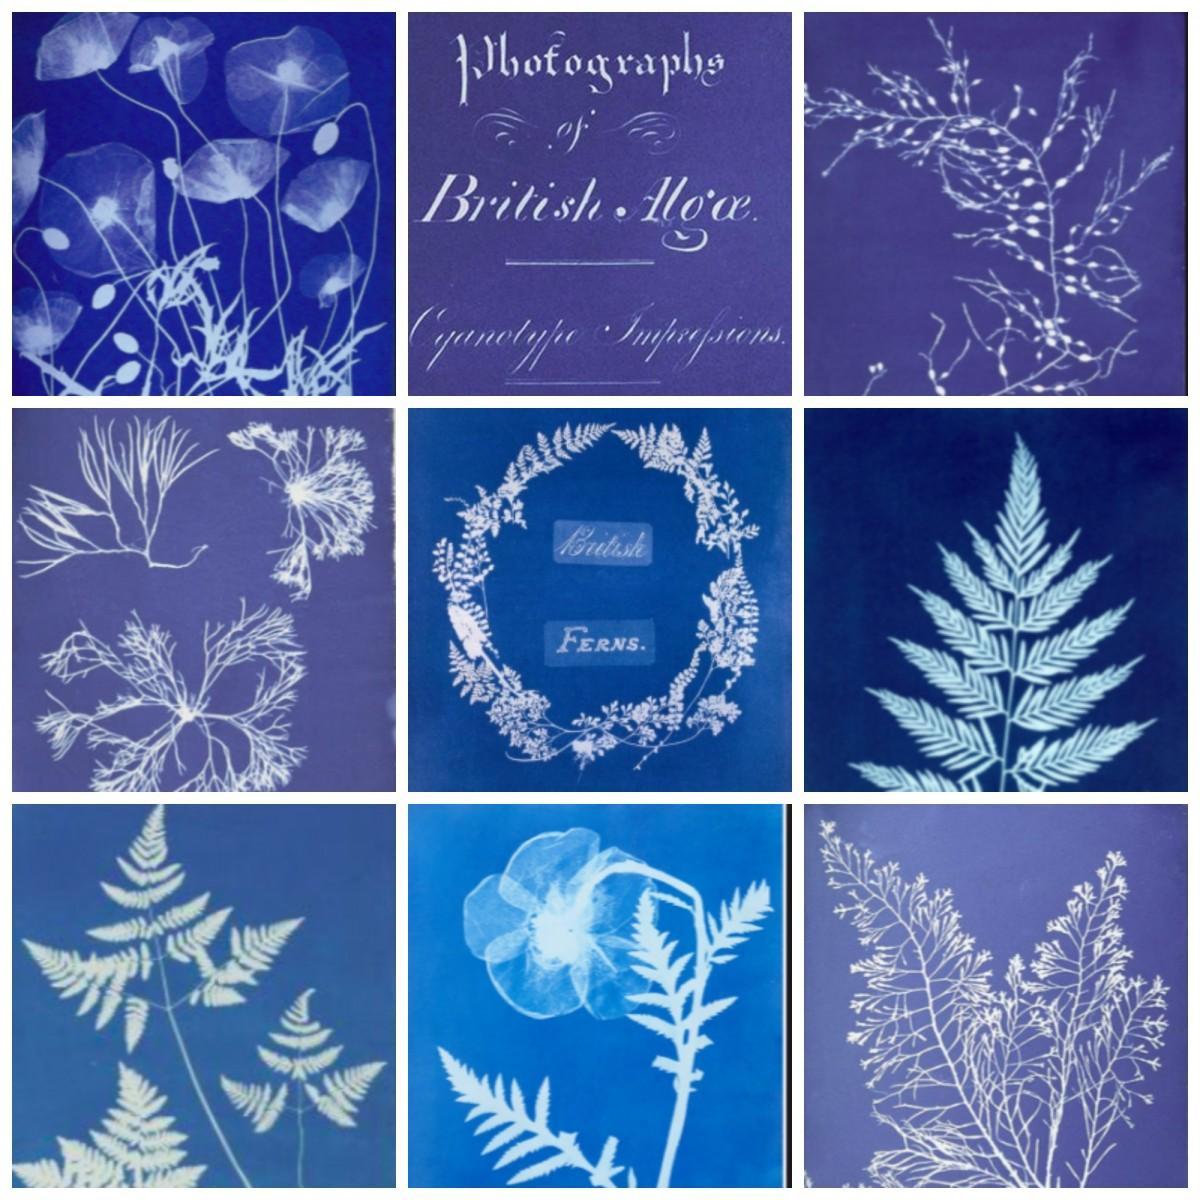 Anna Atkins collage